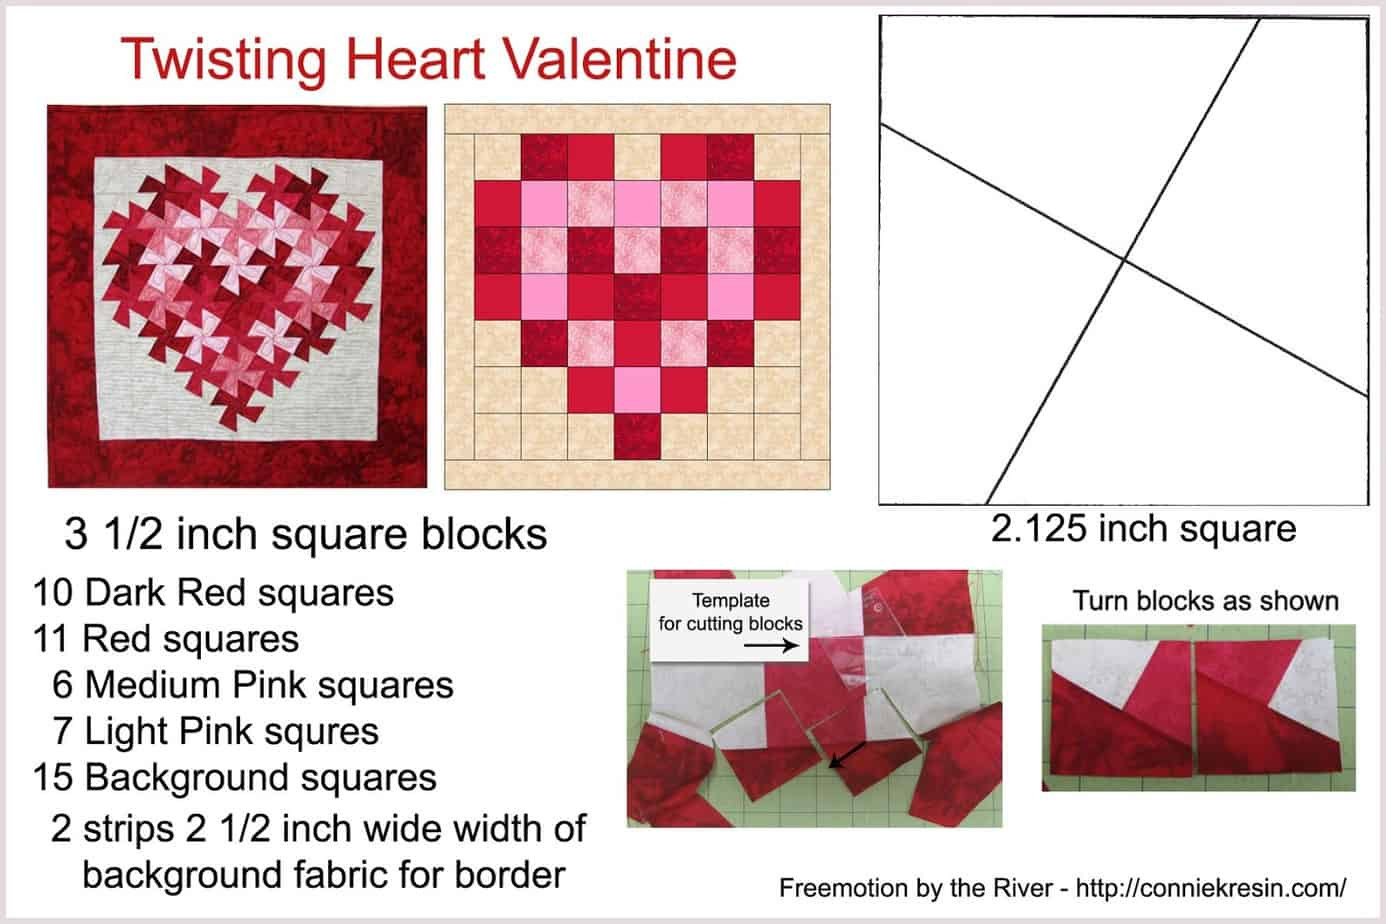 Twisting Heart Valentine Tutorial Freemotion By The River